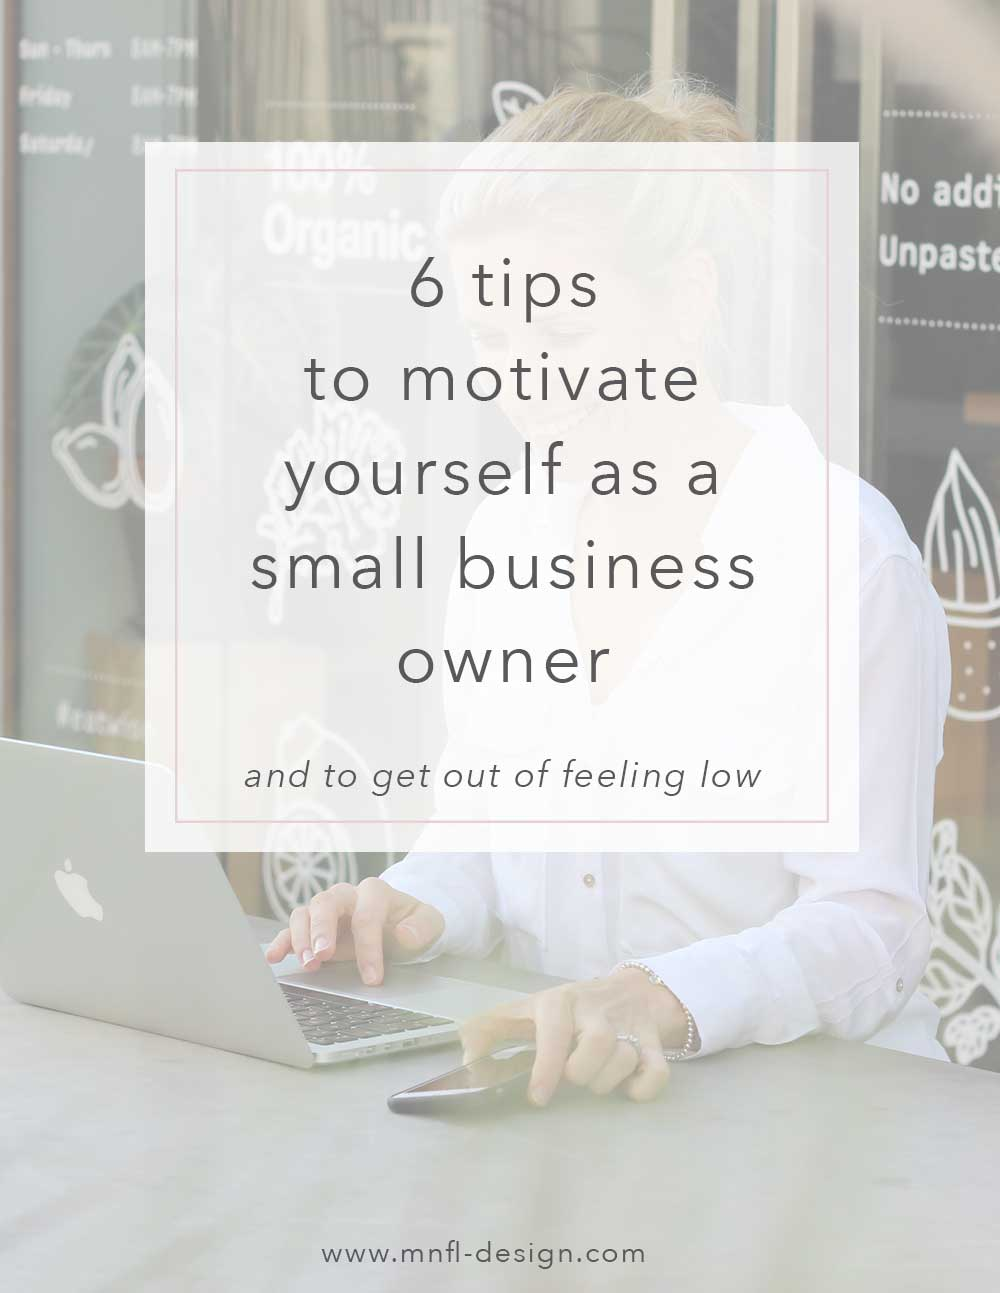 6 Tips to motivate yourself as a small business owner and to get out of feeling low | MNFL Design